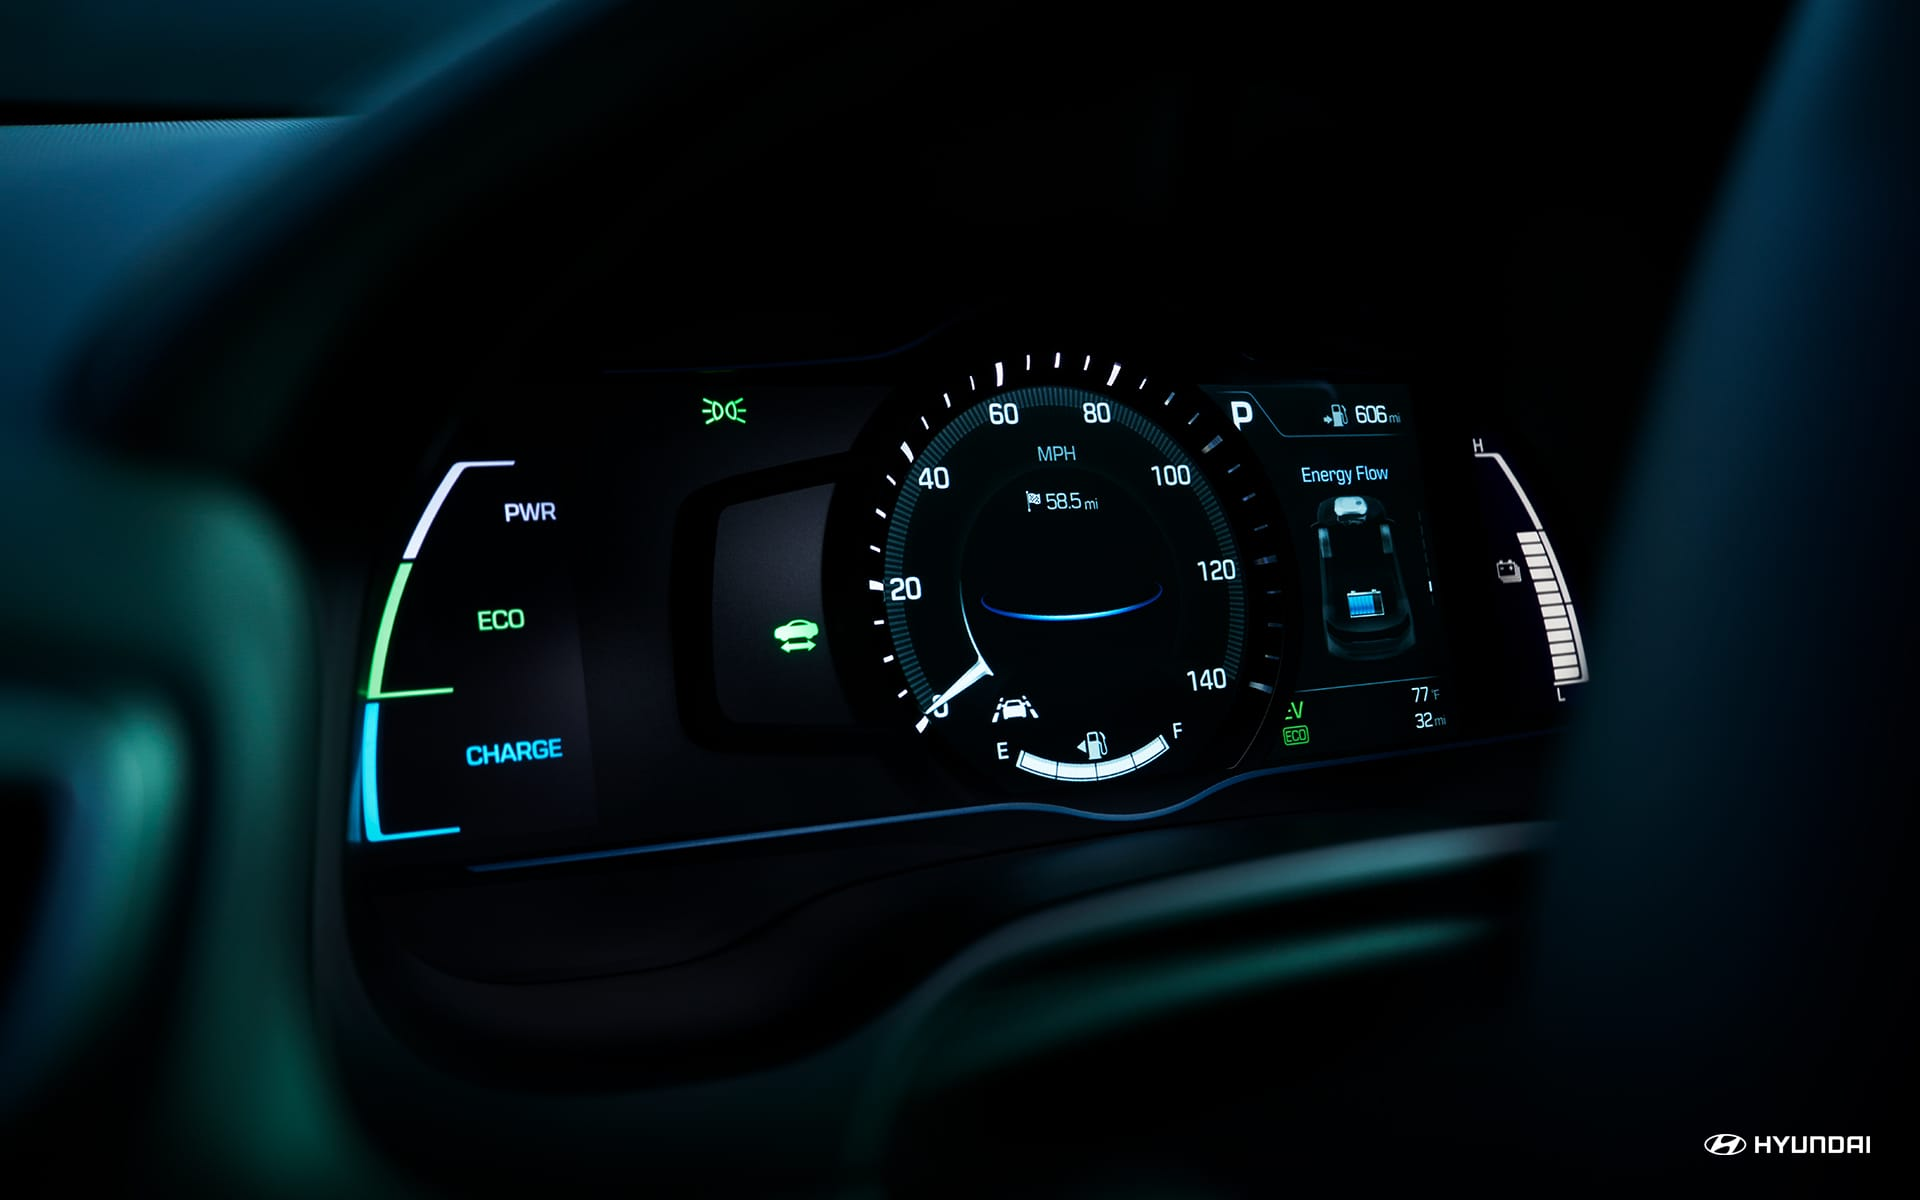 2019 Hyundai Ioniq Hybrid Information Display